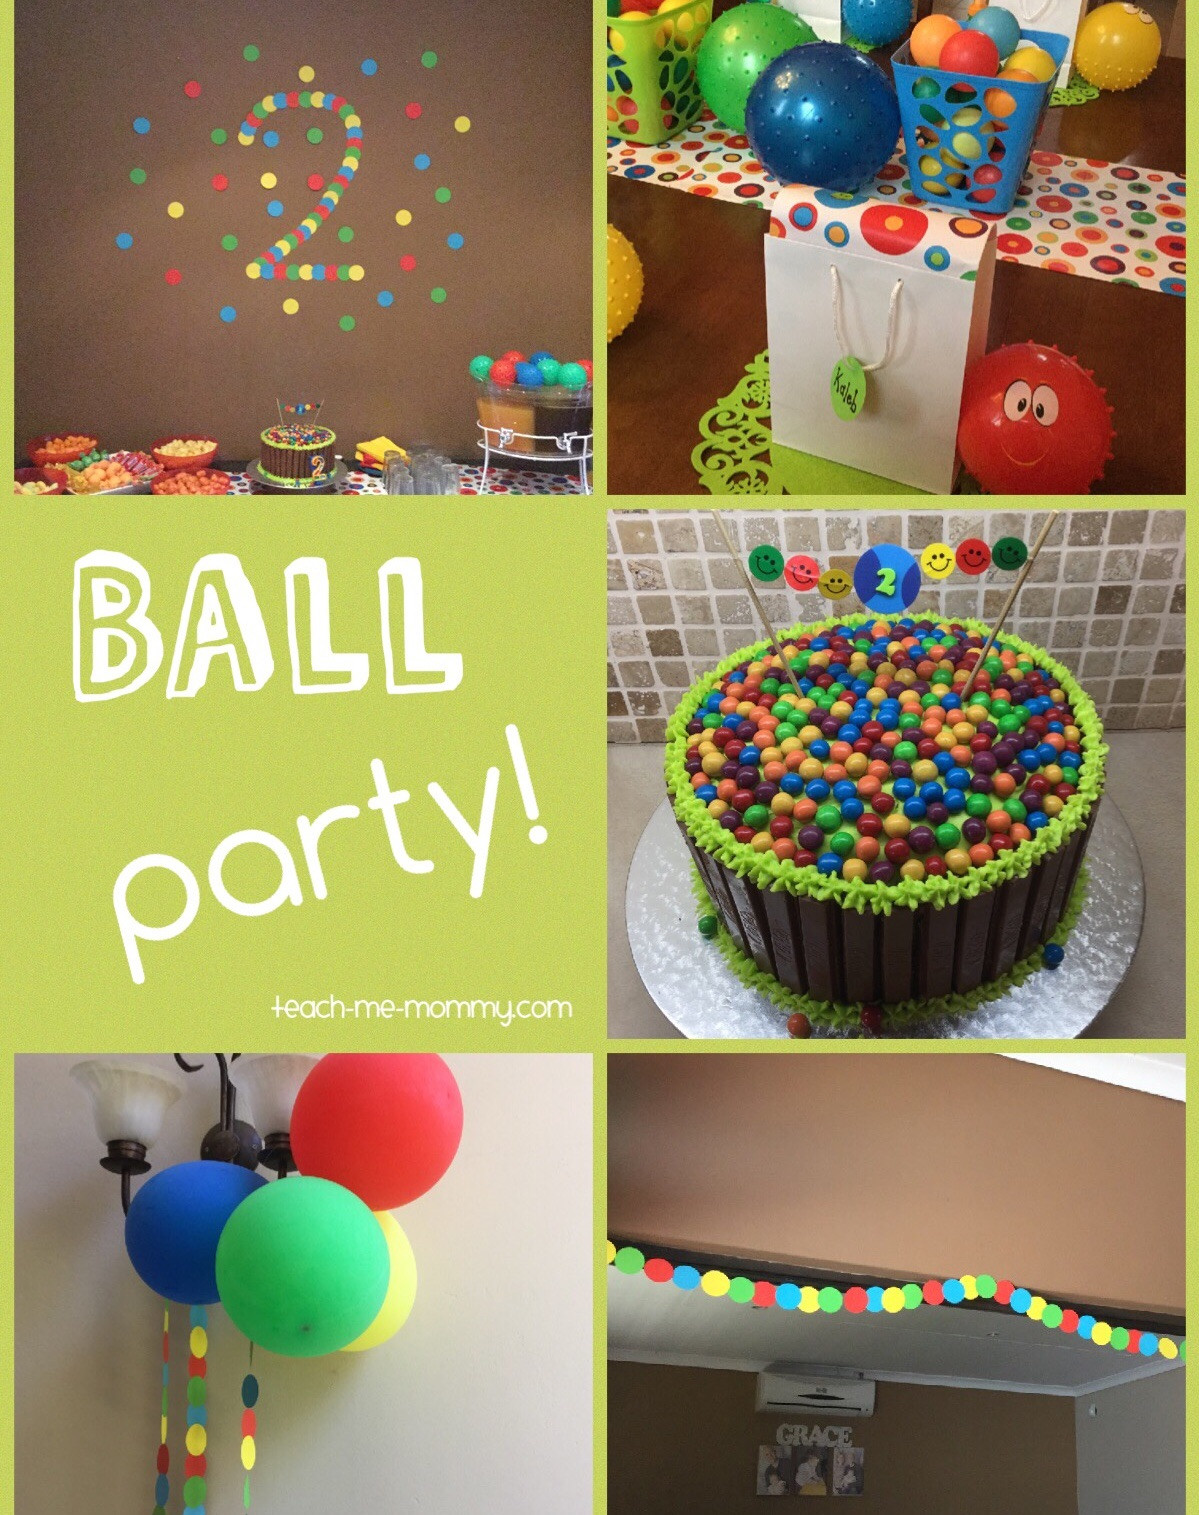 Best ideas about Two Yr Old Birthday Party Ideas . Save or Pin Ball Themed Party for a 2 Year Old Teach Me Mommy Now.